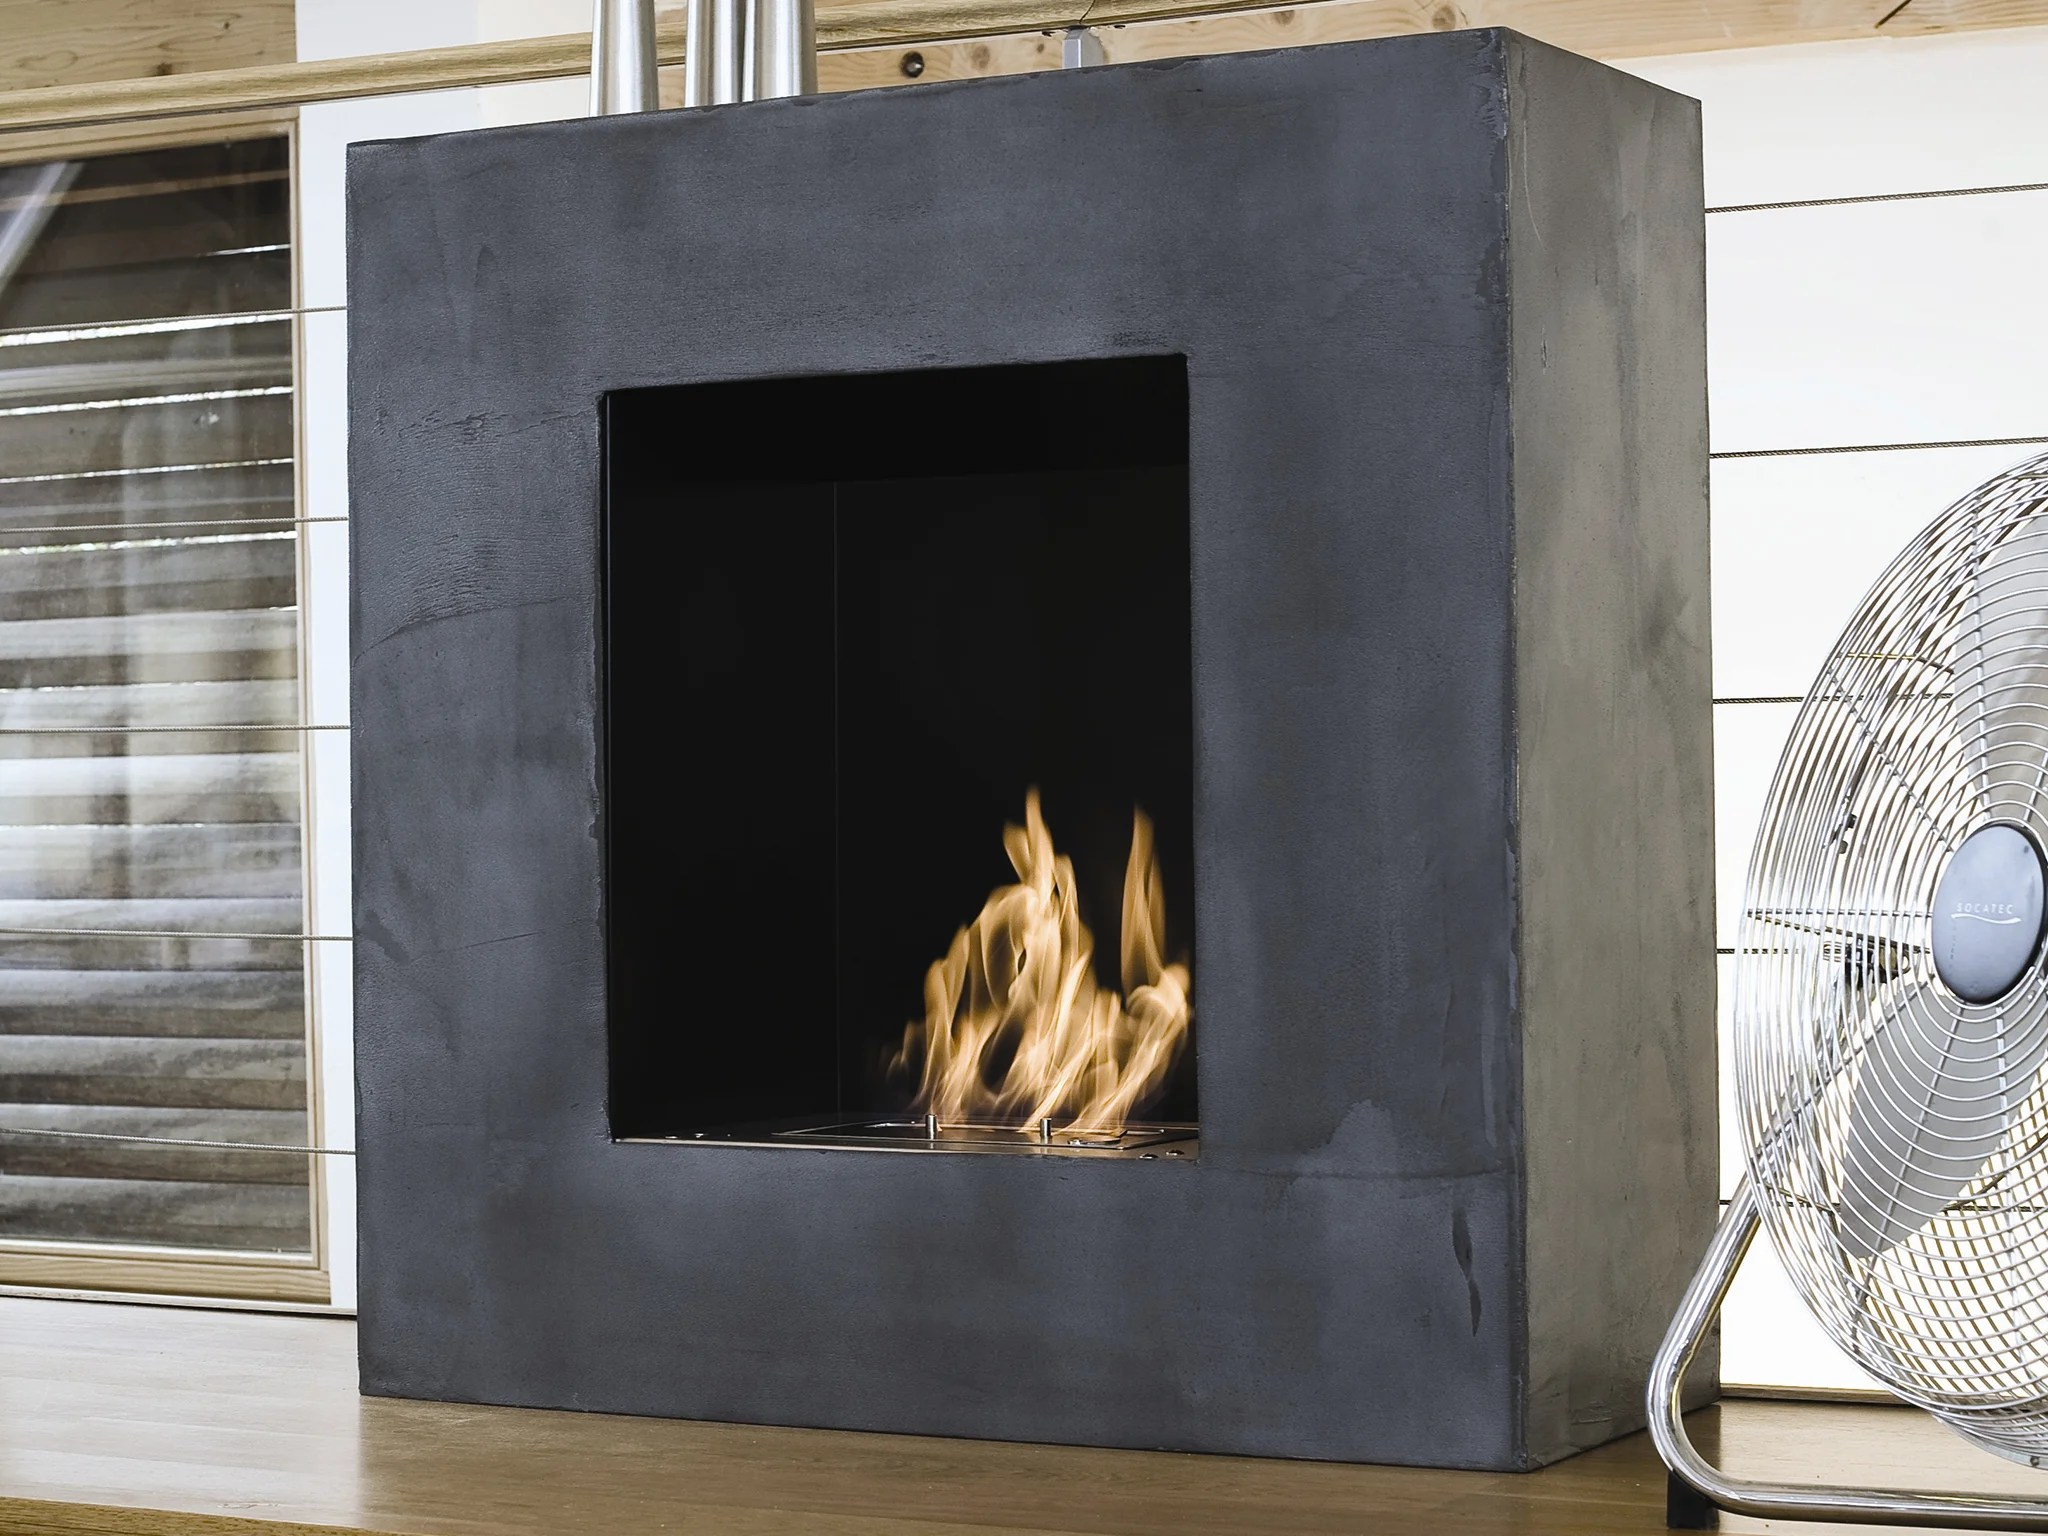 Artificial Fireplaces Gas And Electric Fires How Fake Will You Go To Add Warmth And